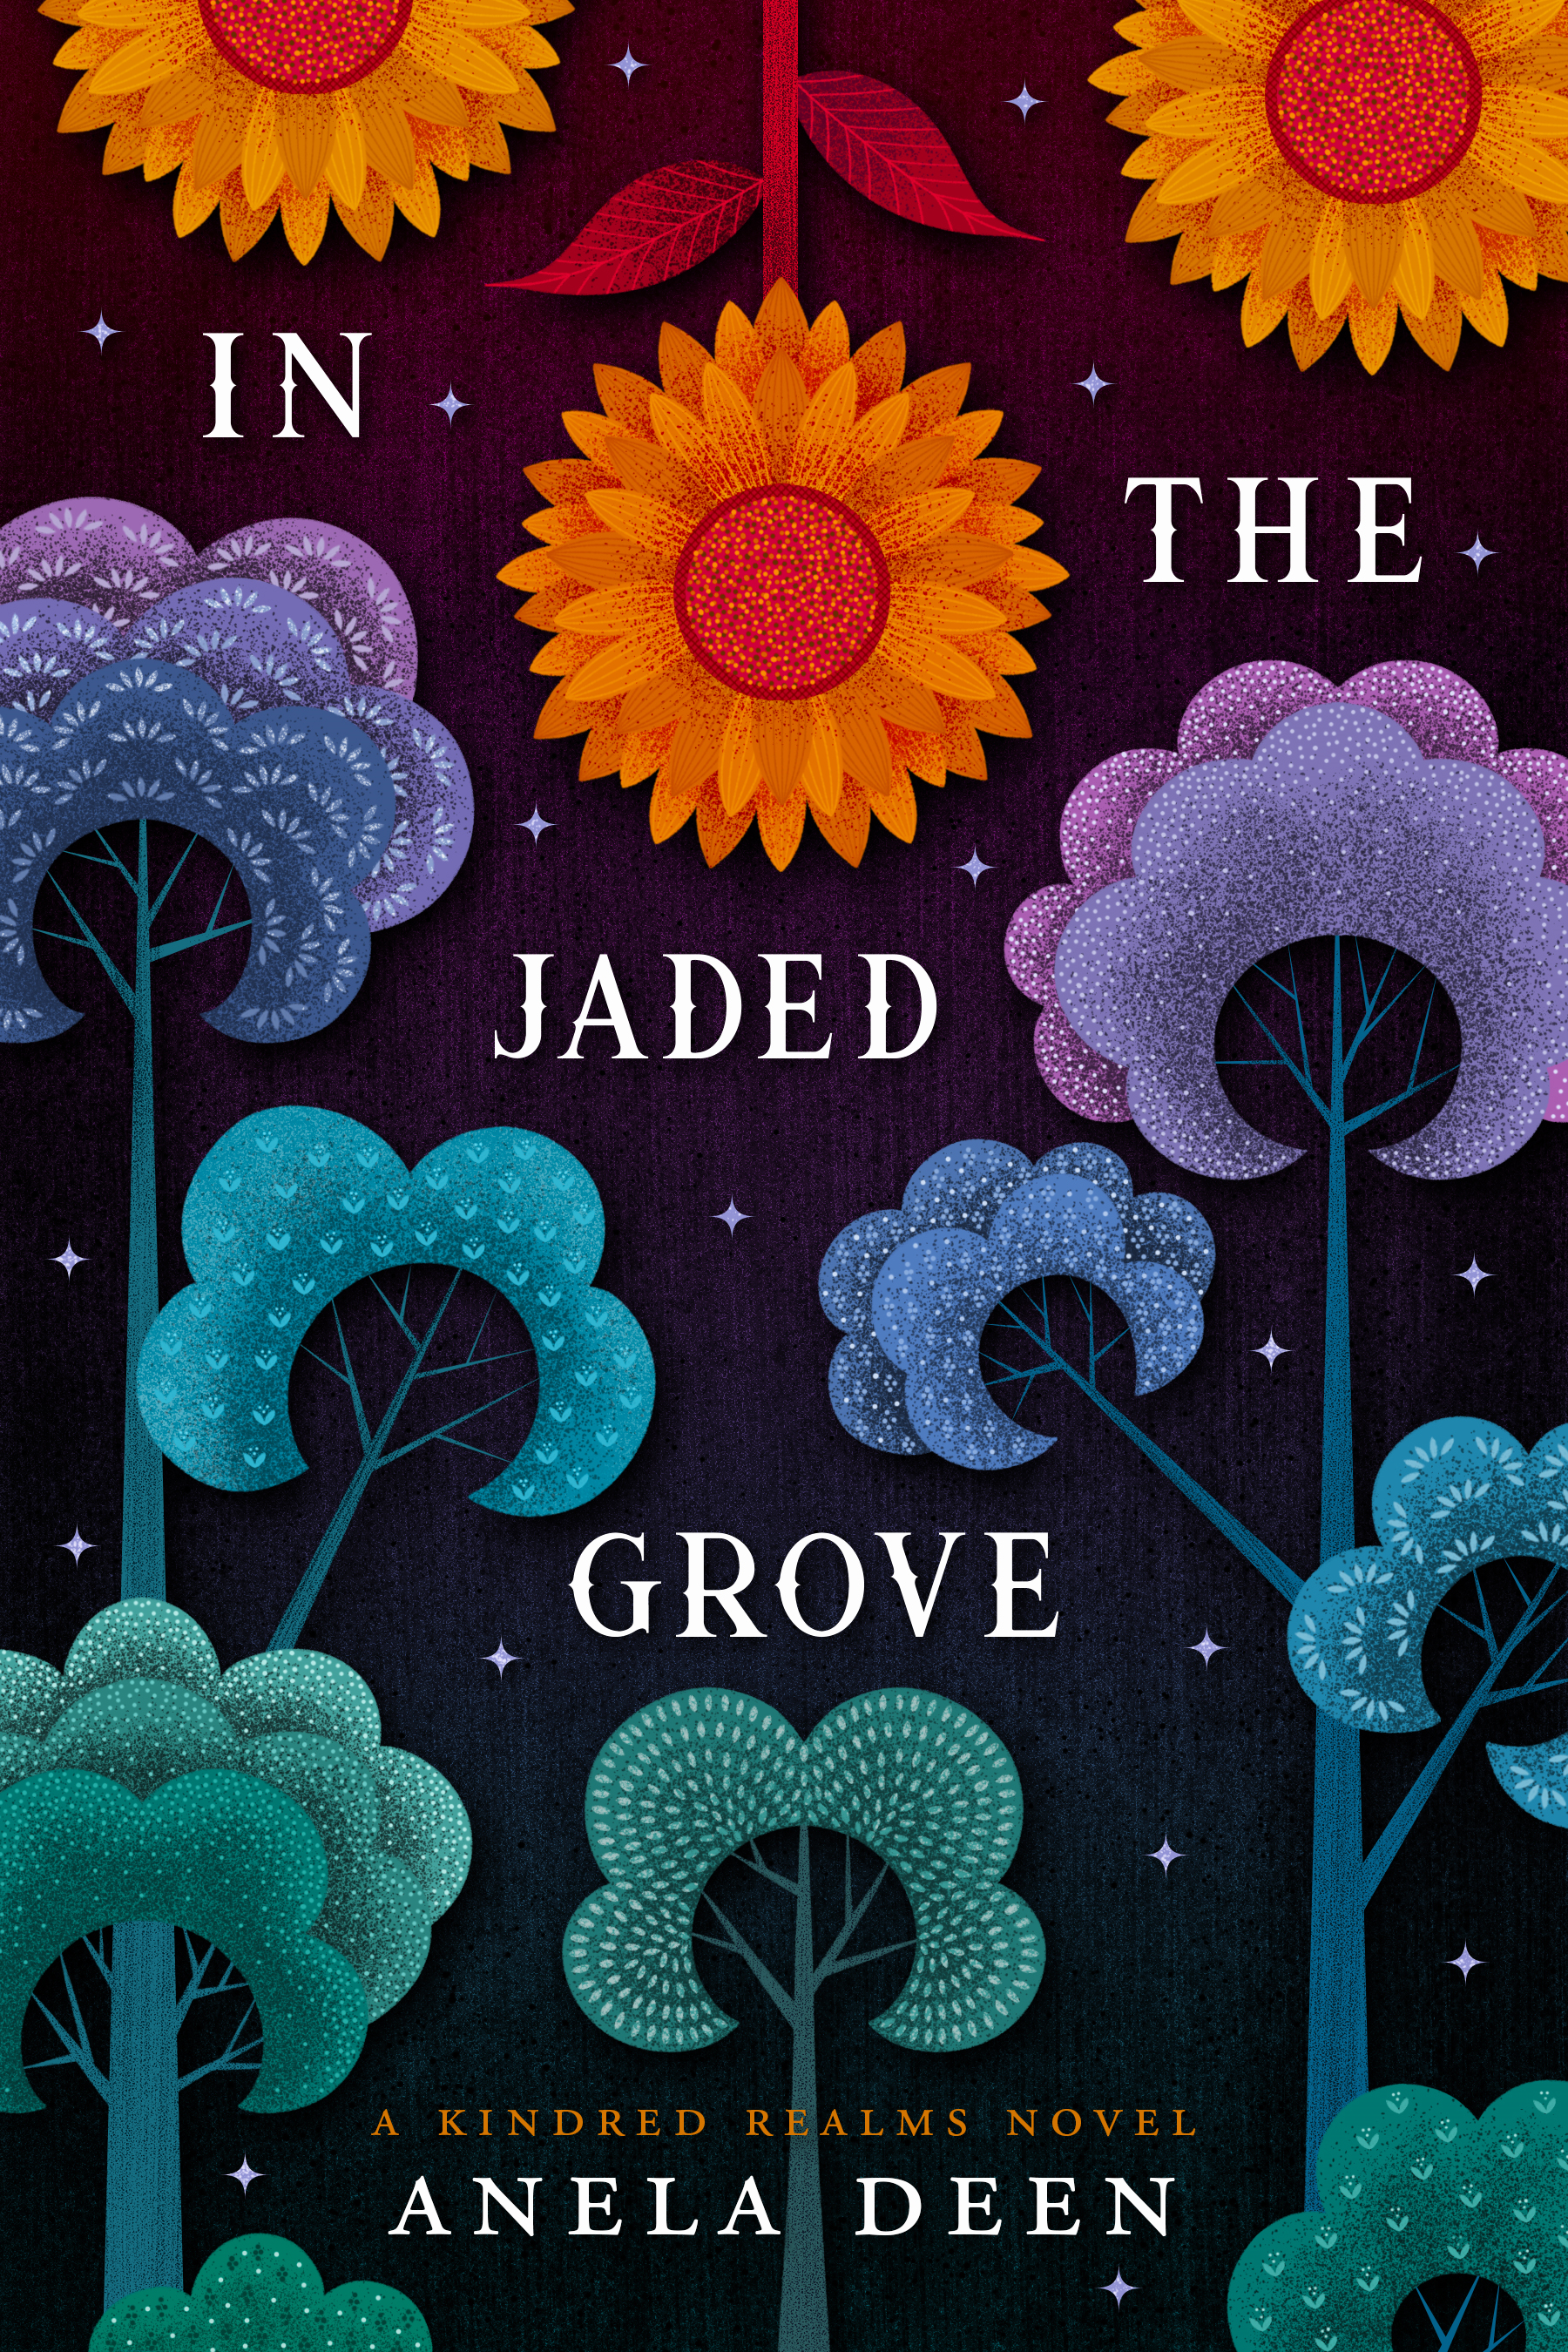 Cover Art for In the Jaded Grove